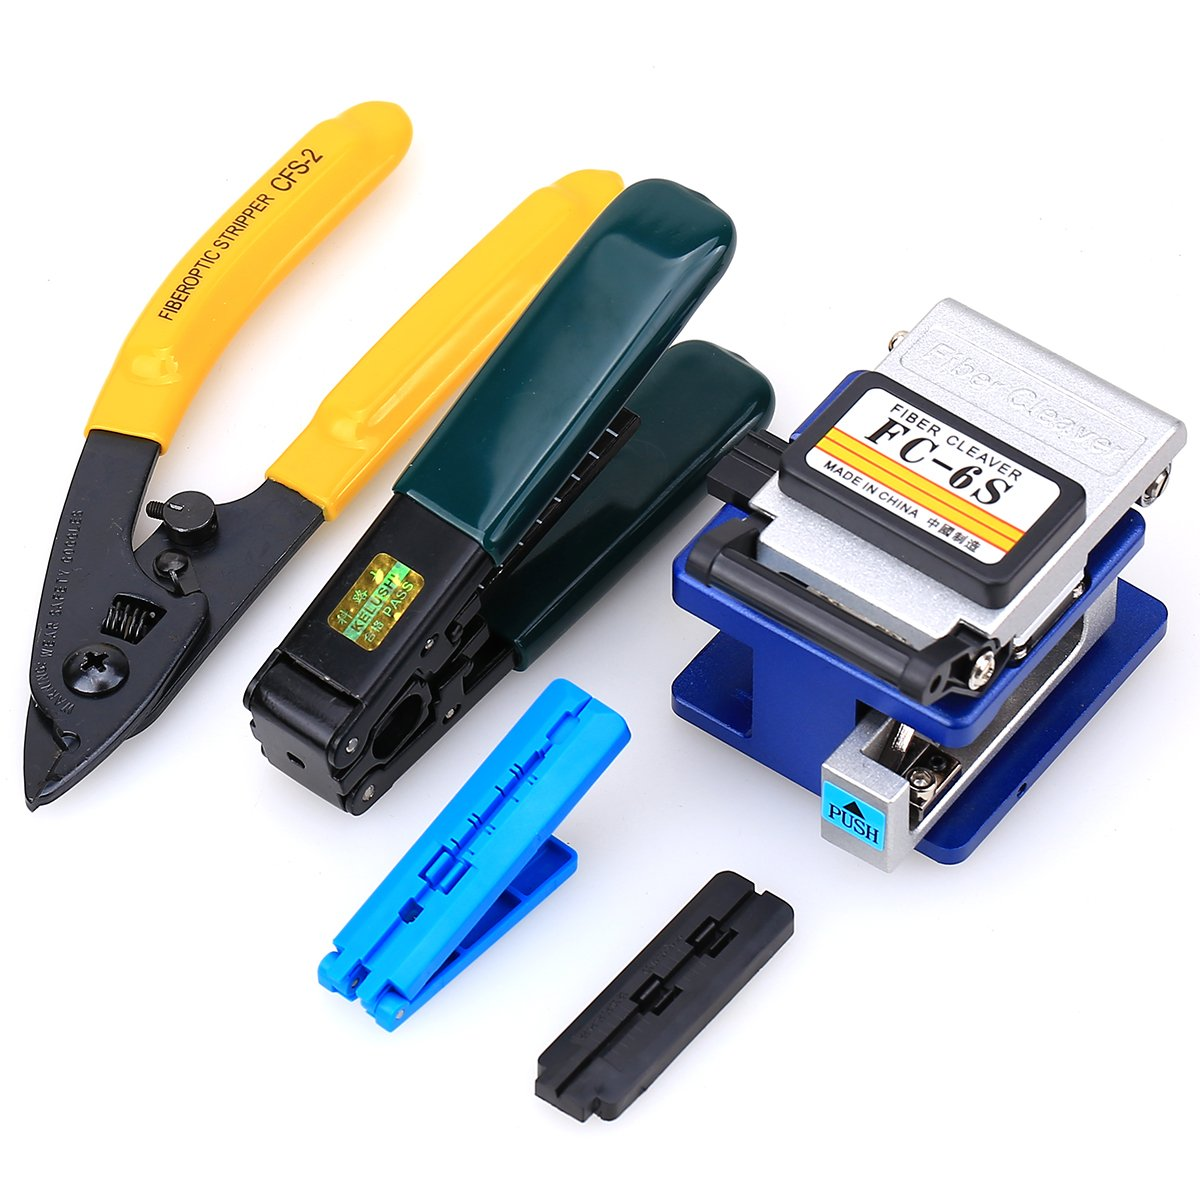 5 in 1 FTTH Fiber Optic Tool Kit FC-6S Fiber Cleaver Fiber